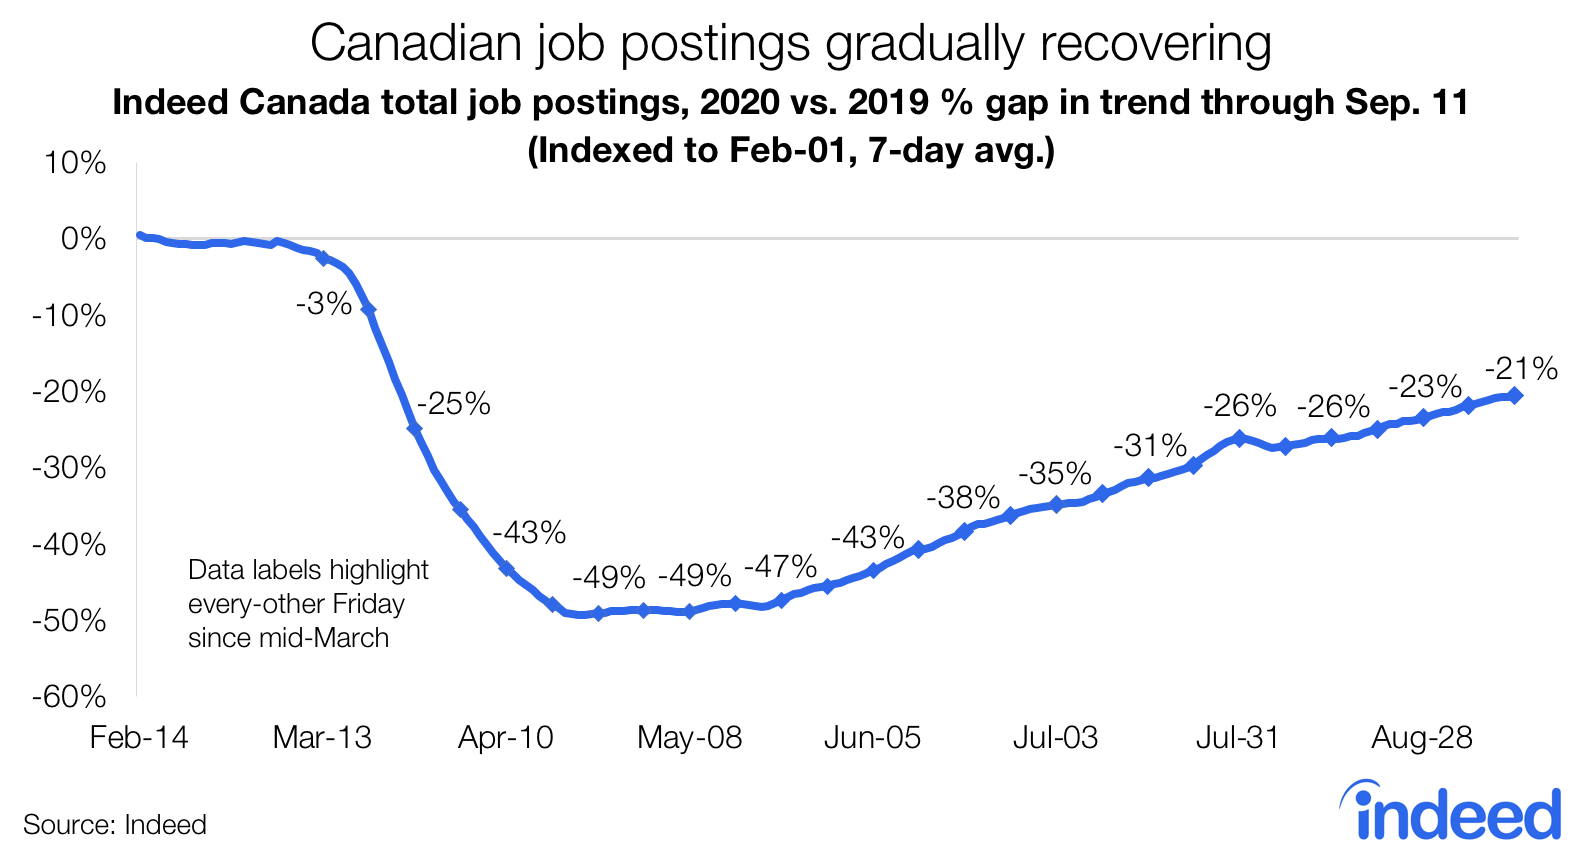 Line graph trend Canadian job postings gradually recovering following pandemic.